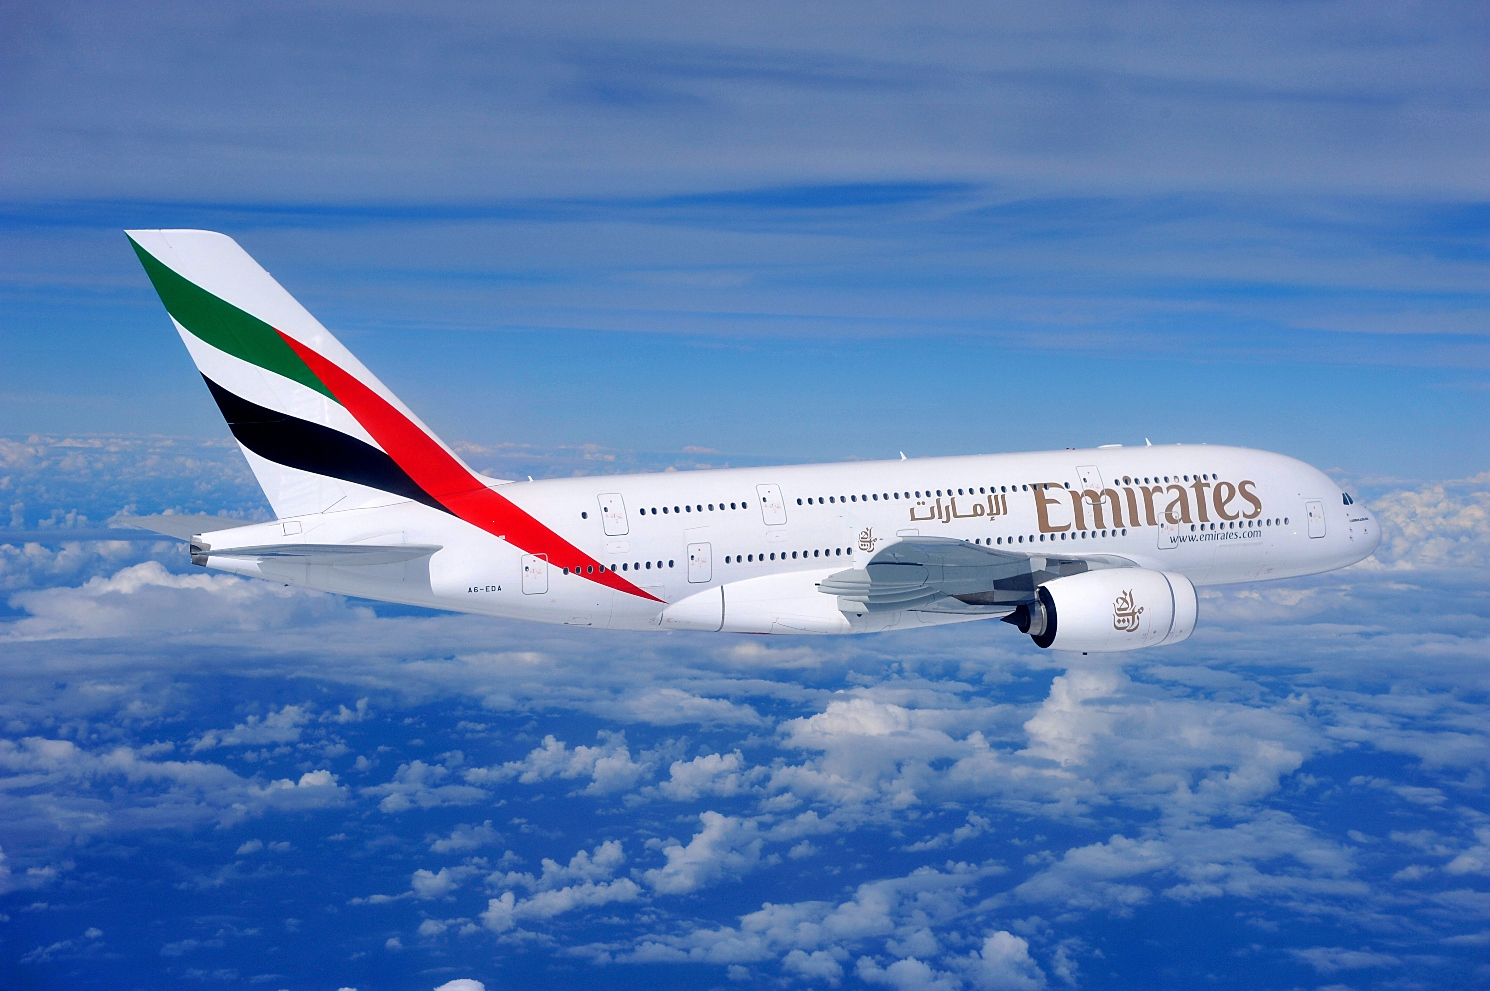 Emirates First to Launch A380 at Gatwick